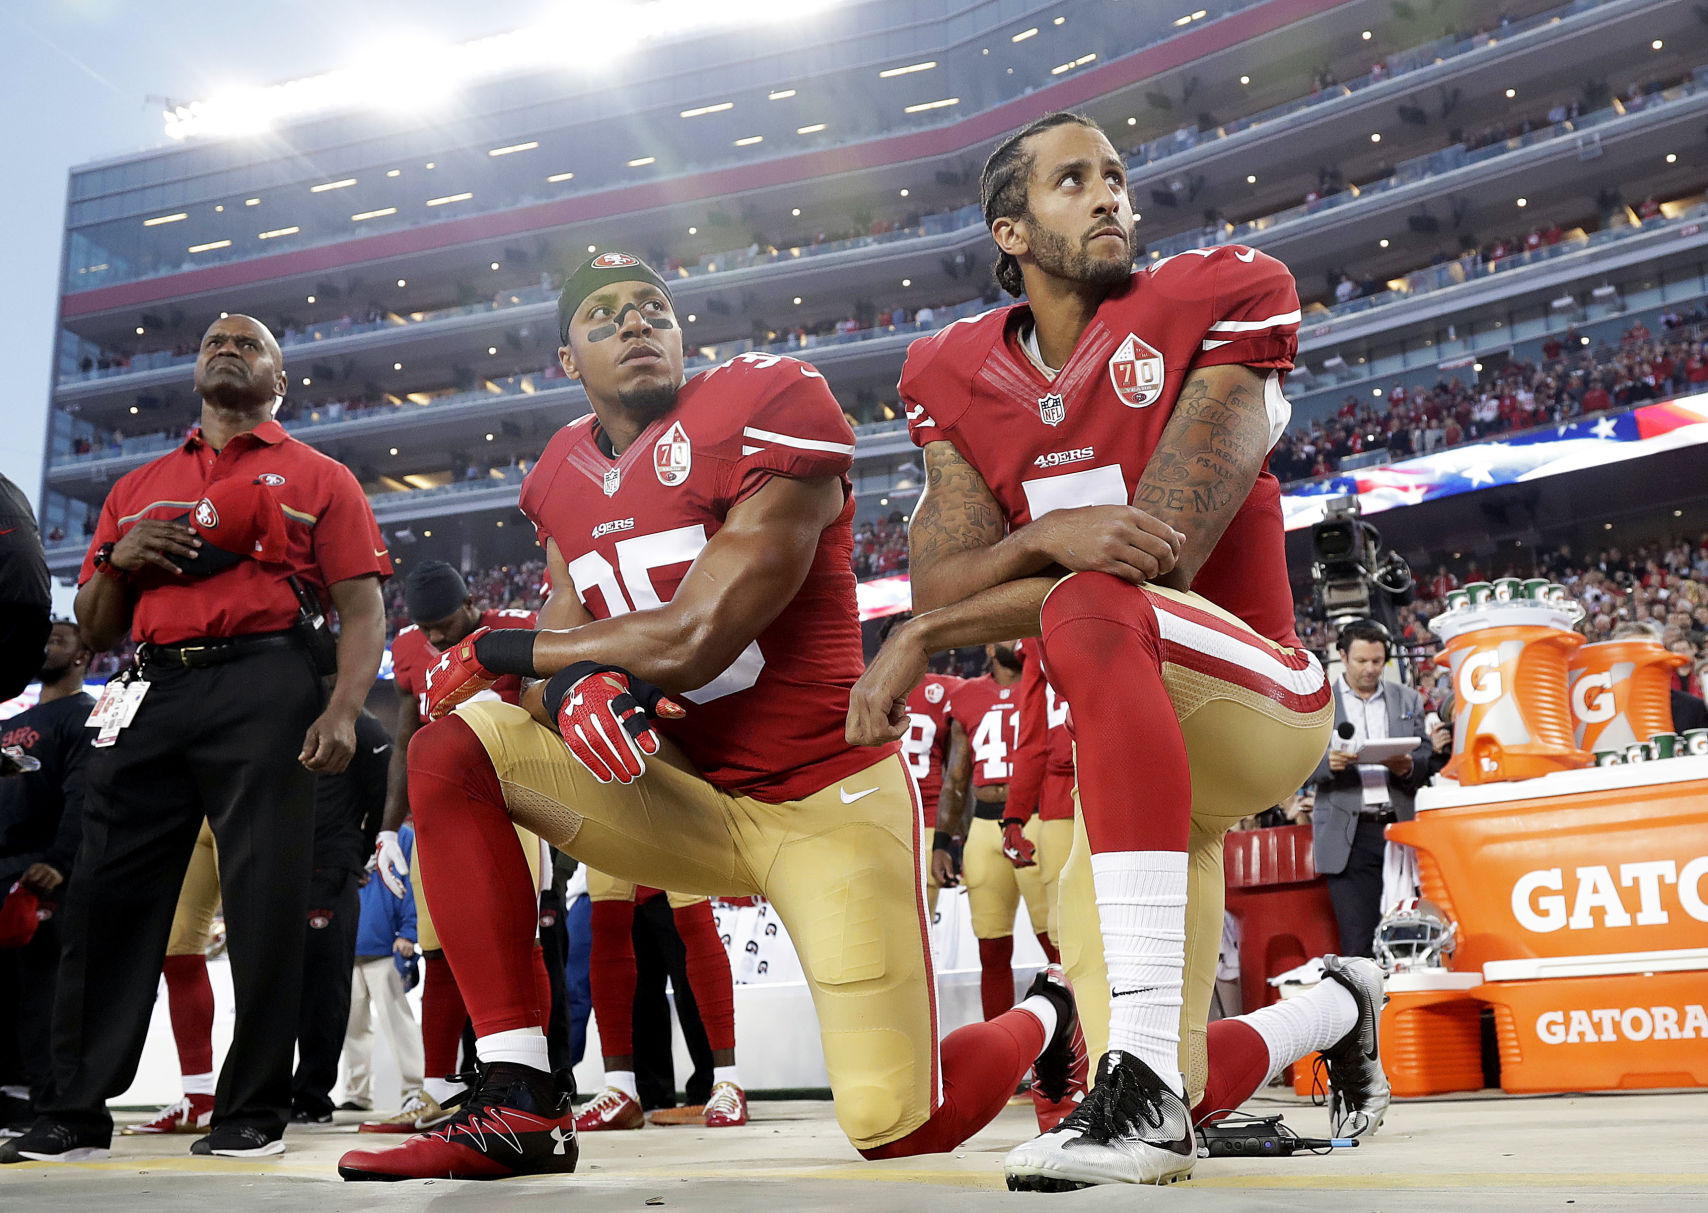 #TakeTheKnee trending hashtag reveals sharp debate over National Football League  players' kneeling